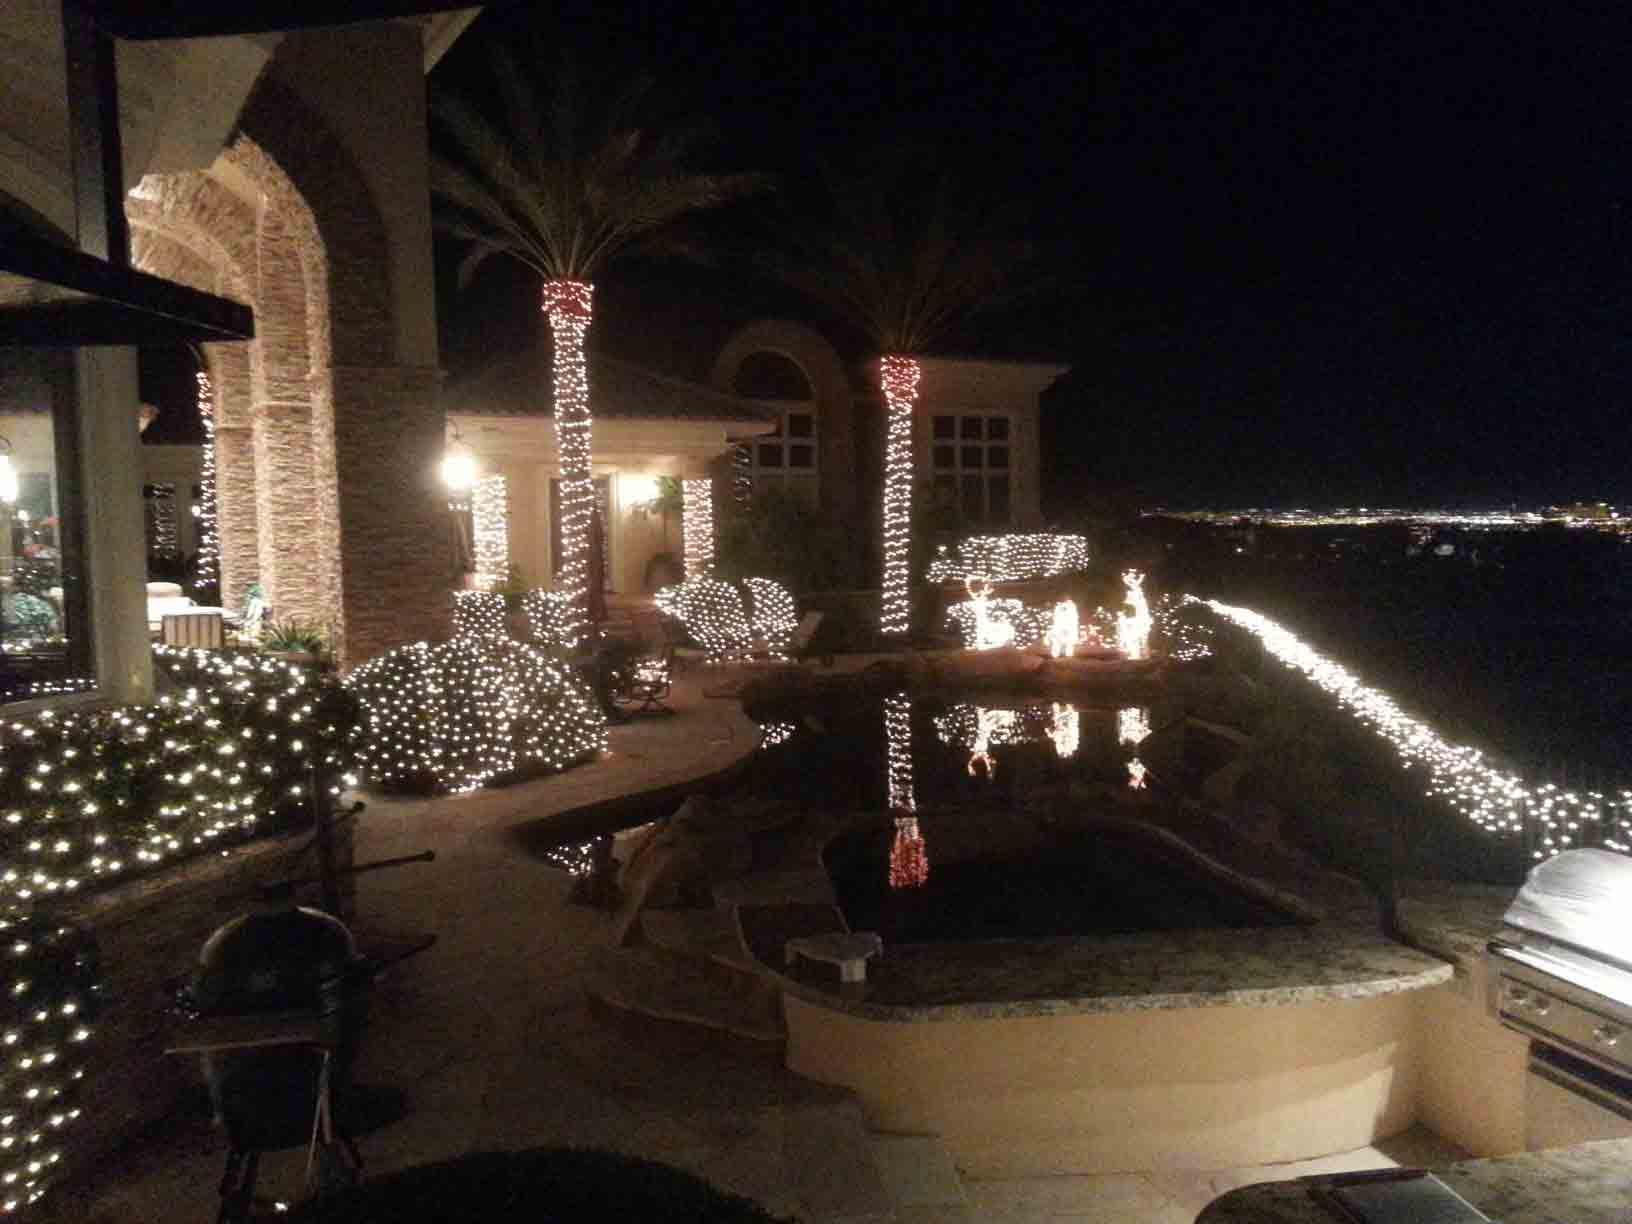 Backyard Christmas lights by Holiday Decorations in Las Vegas